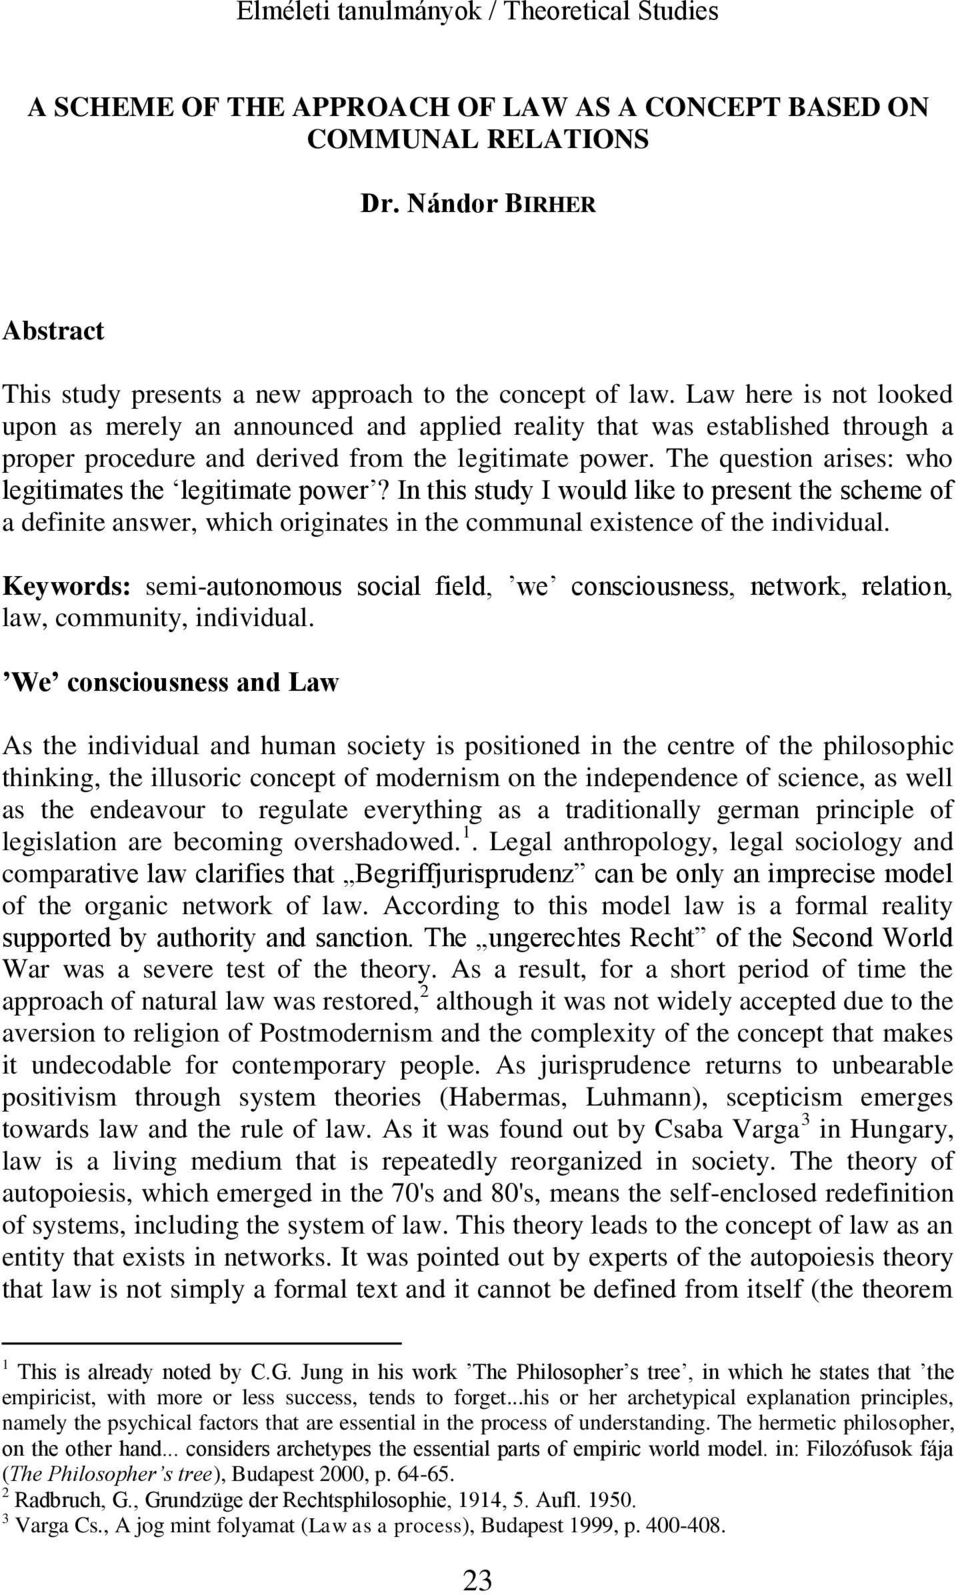 The question arises: who legitimates the legitimate power? In this study I would like to present the scheme of a definite answer, which originates in the communal existence of the individual.